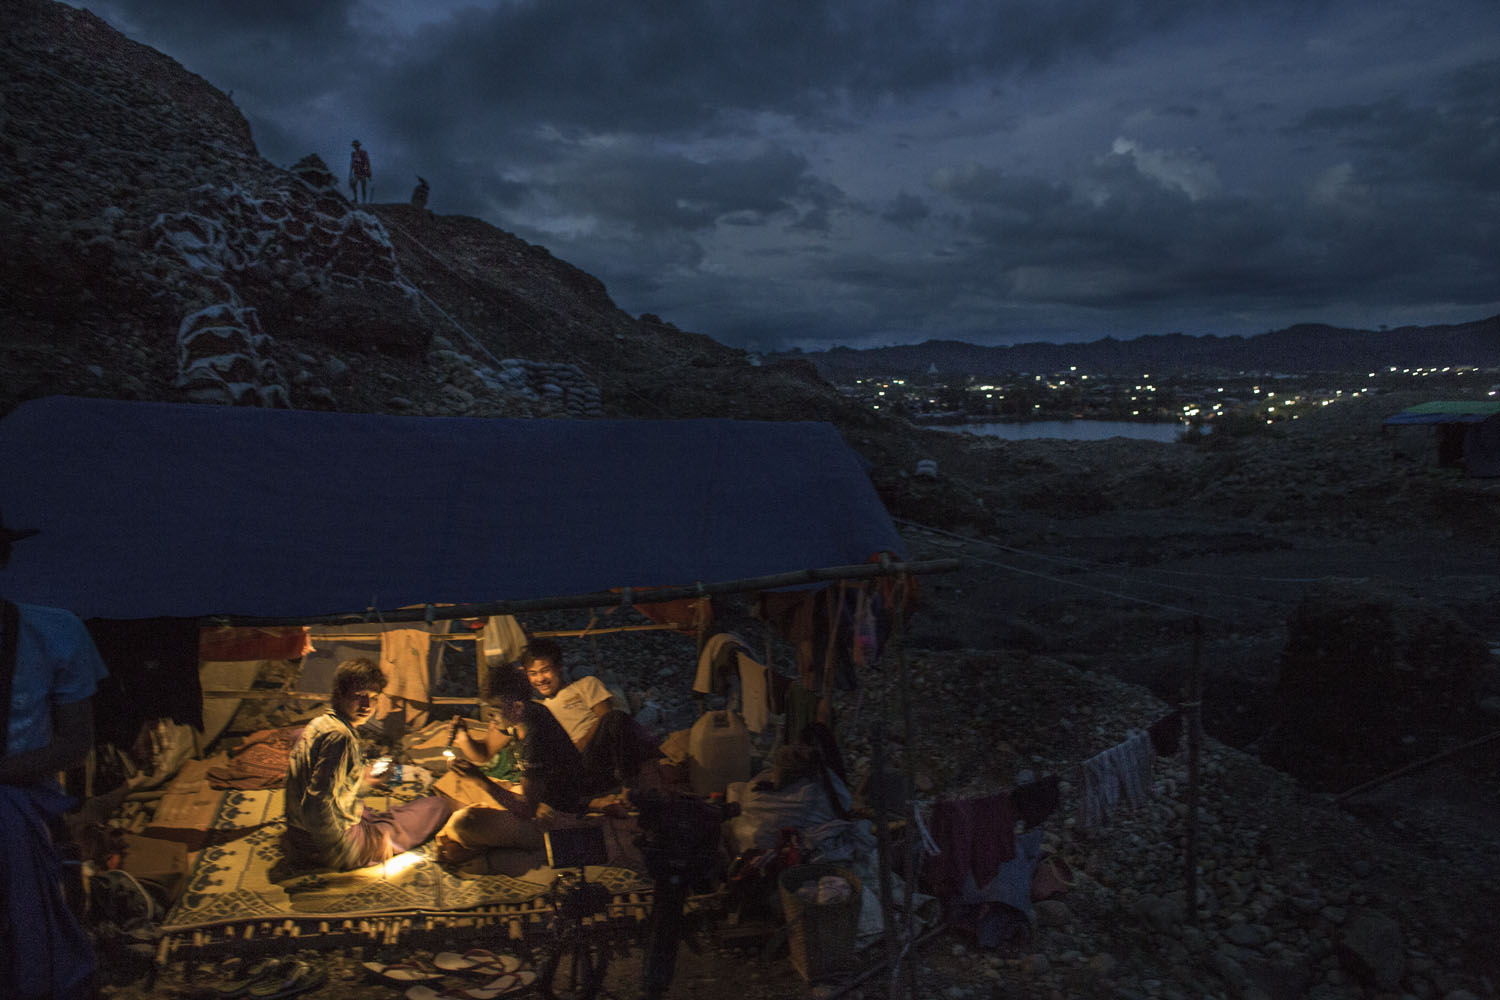 Jade miners rest inside their tents where they sleep to guard their mining plots from strangers as night falls, Hpakant, July 2014